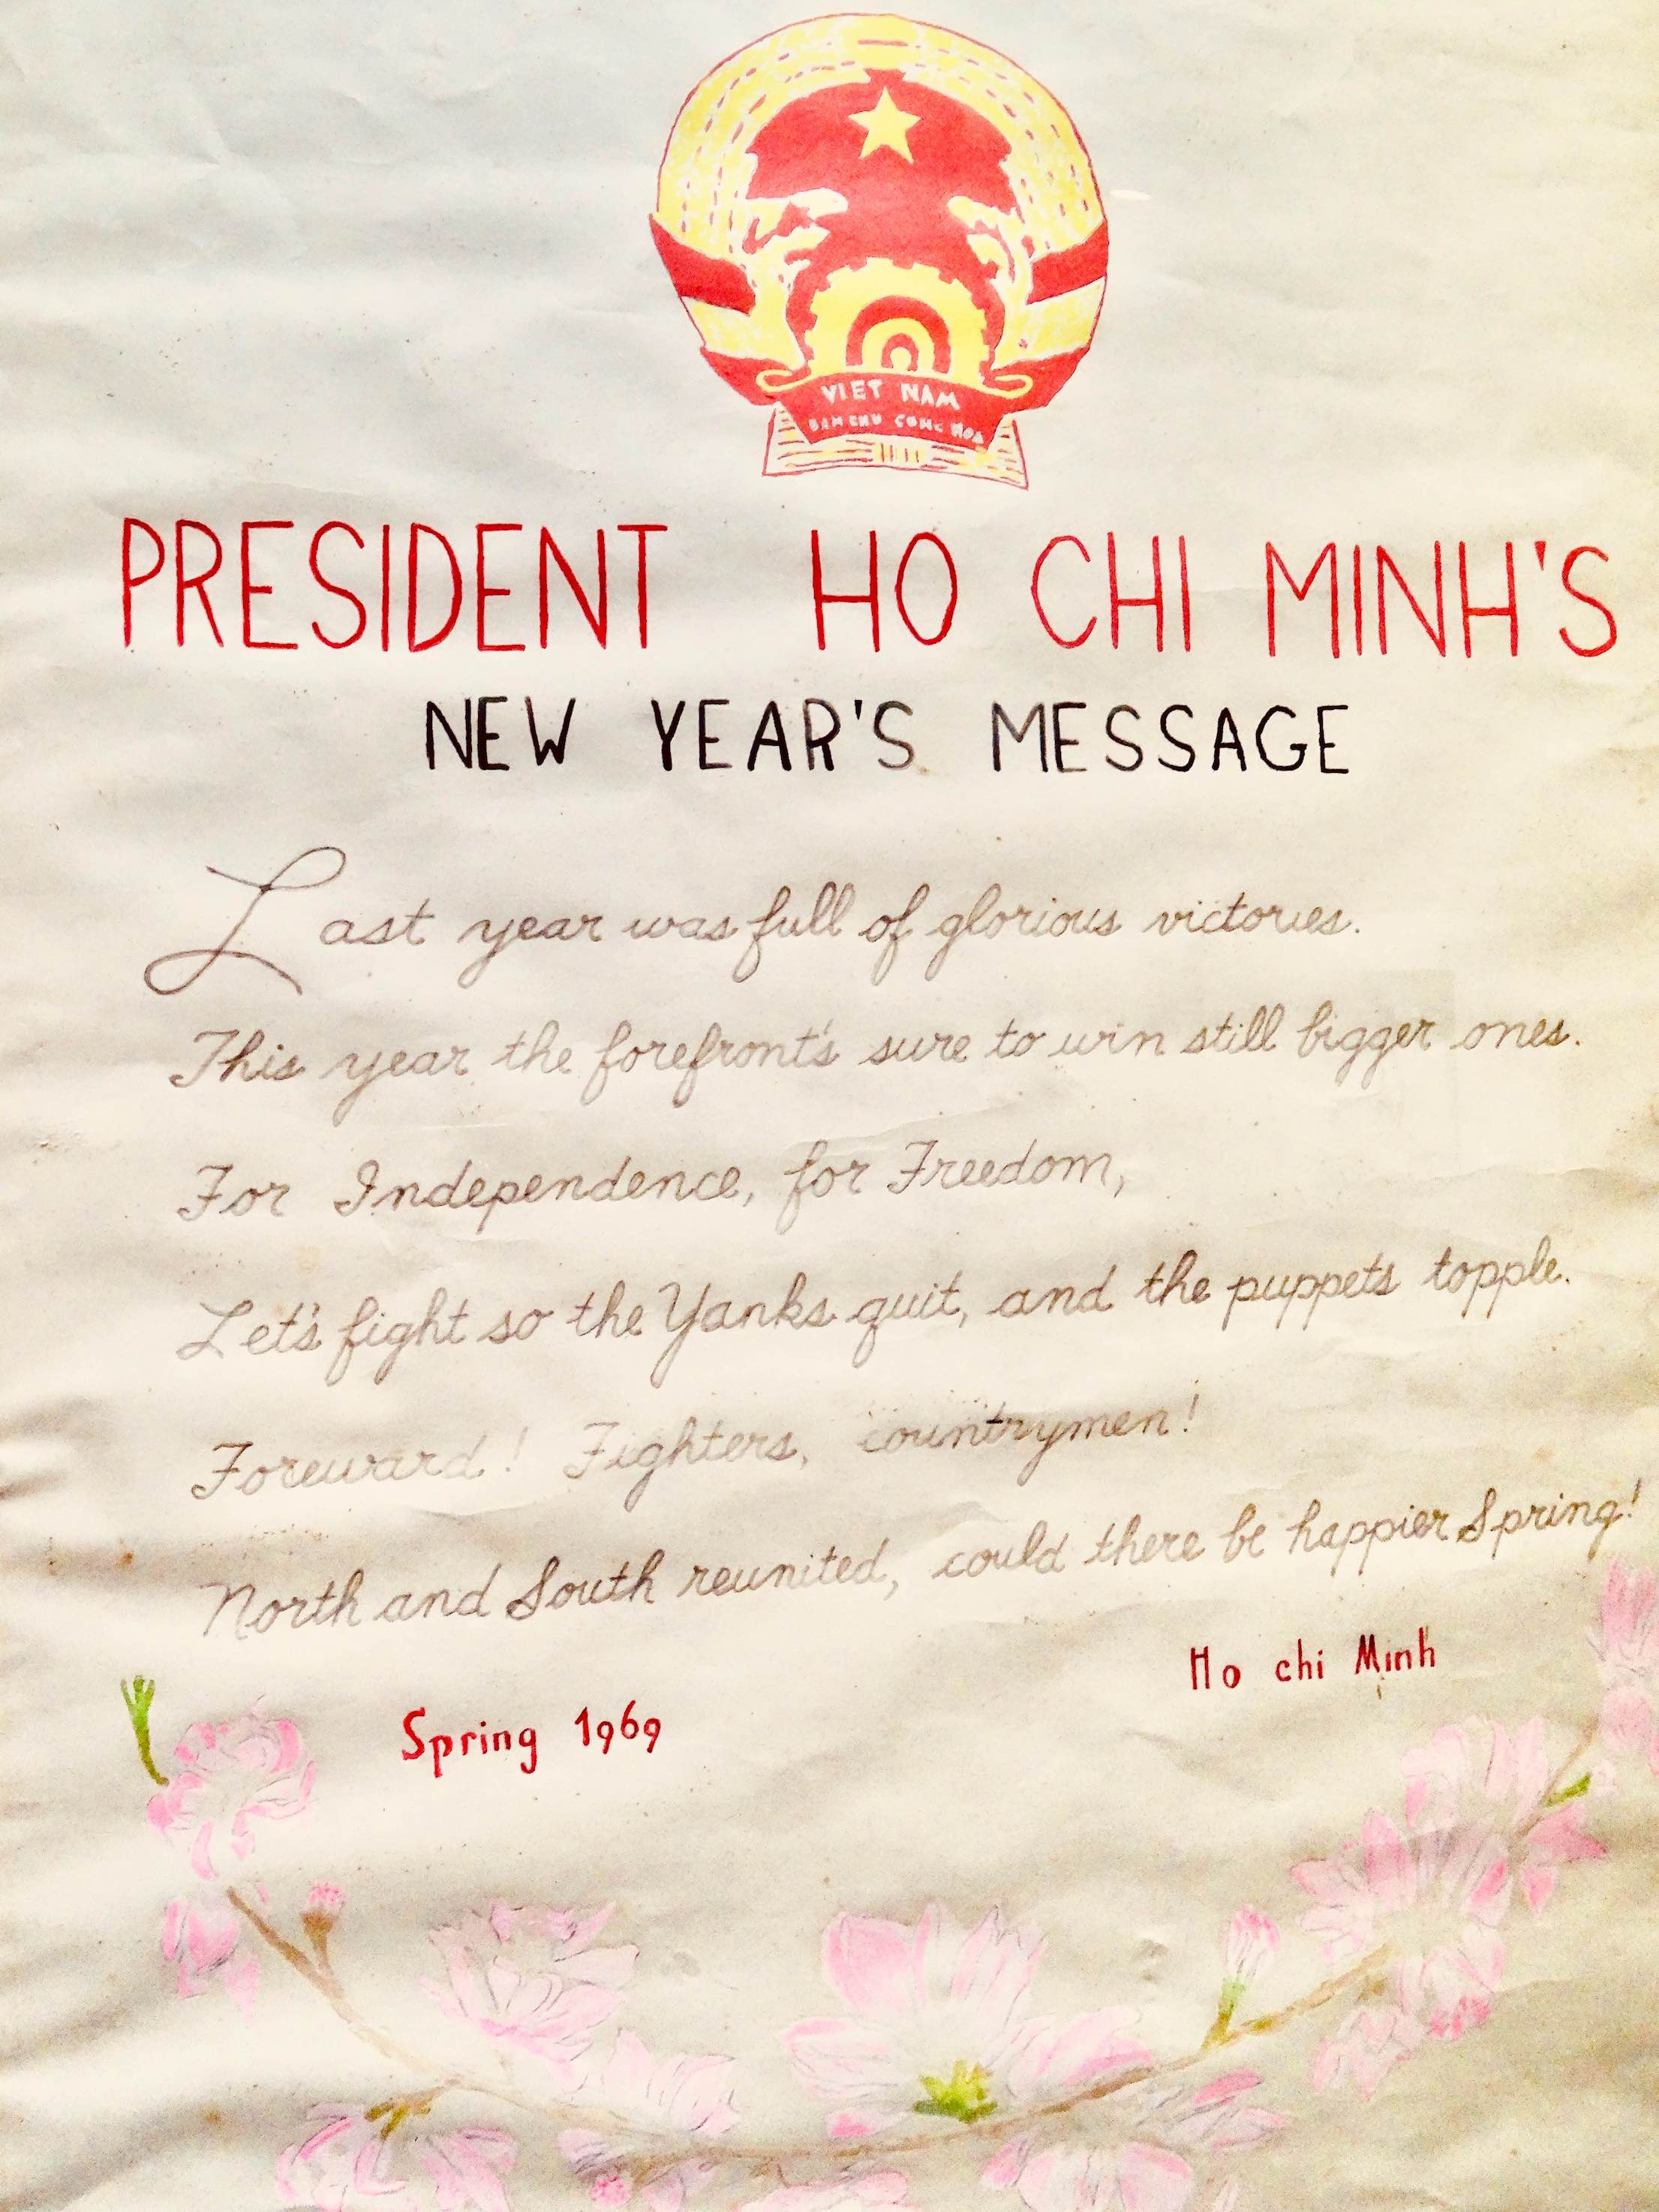 President Ho Chi Minh's handwritten New Year's Message 1969